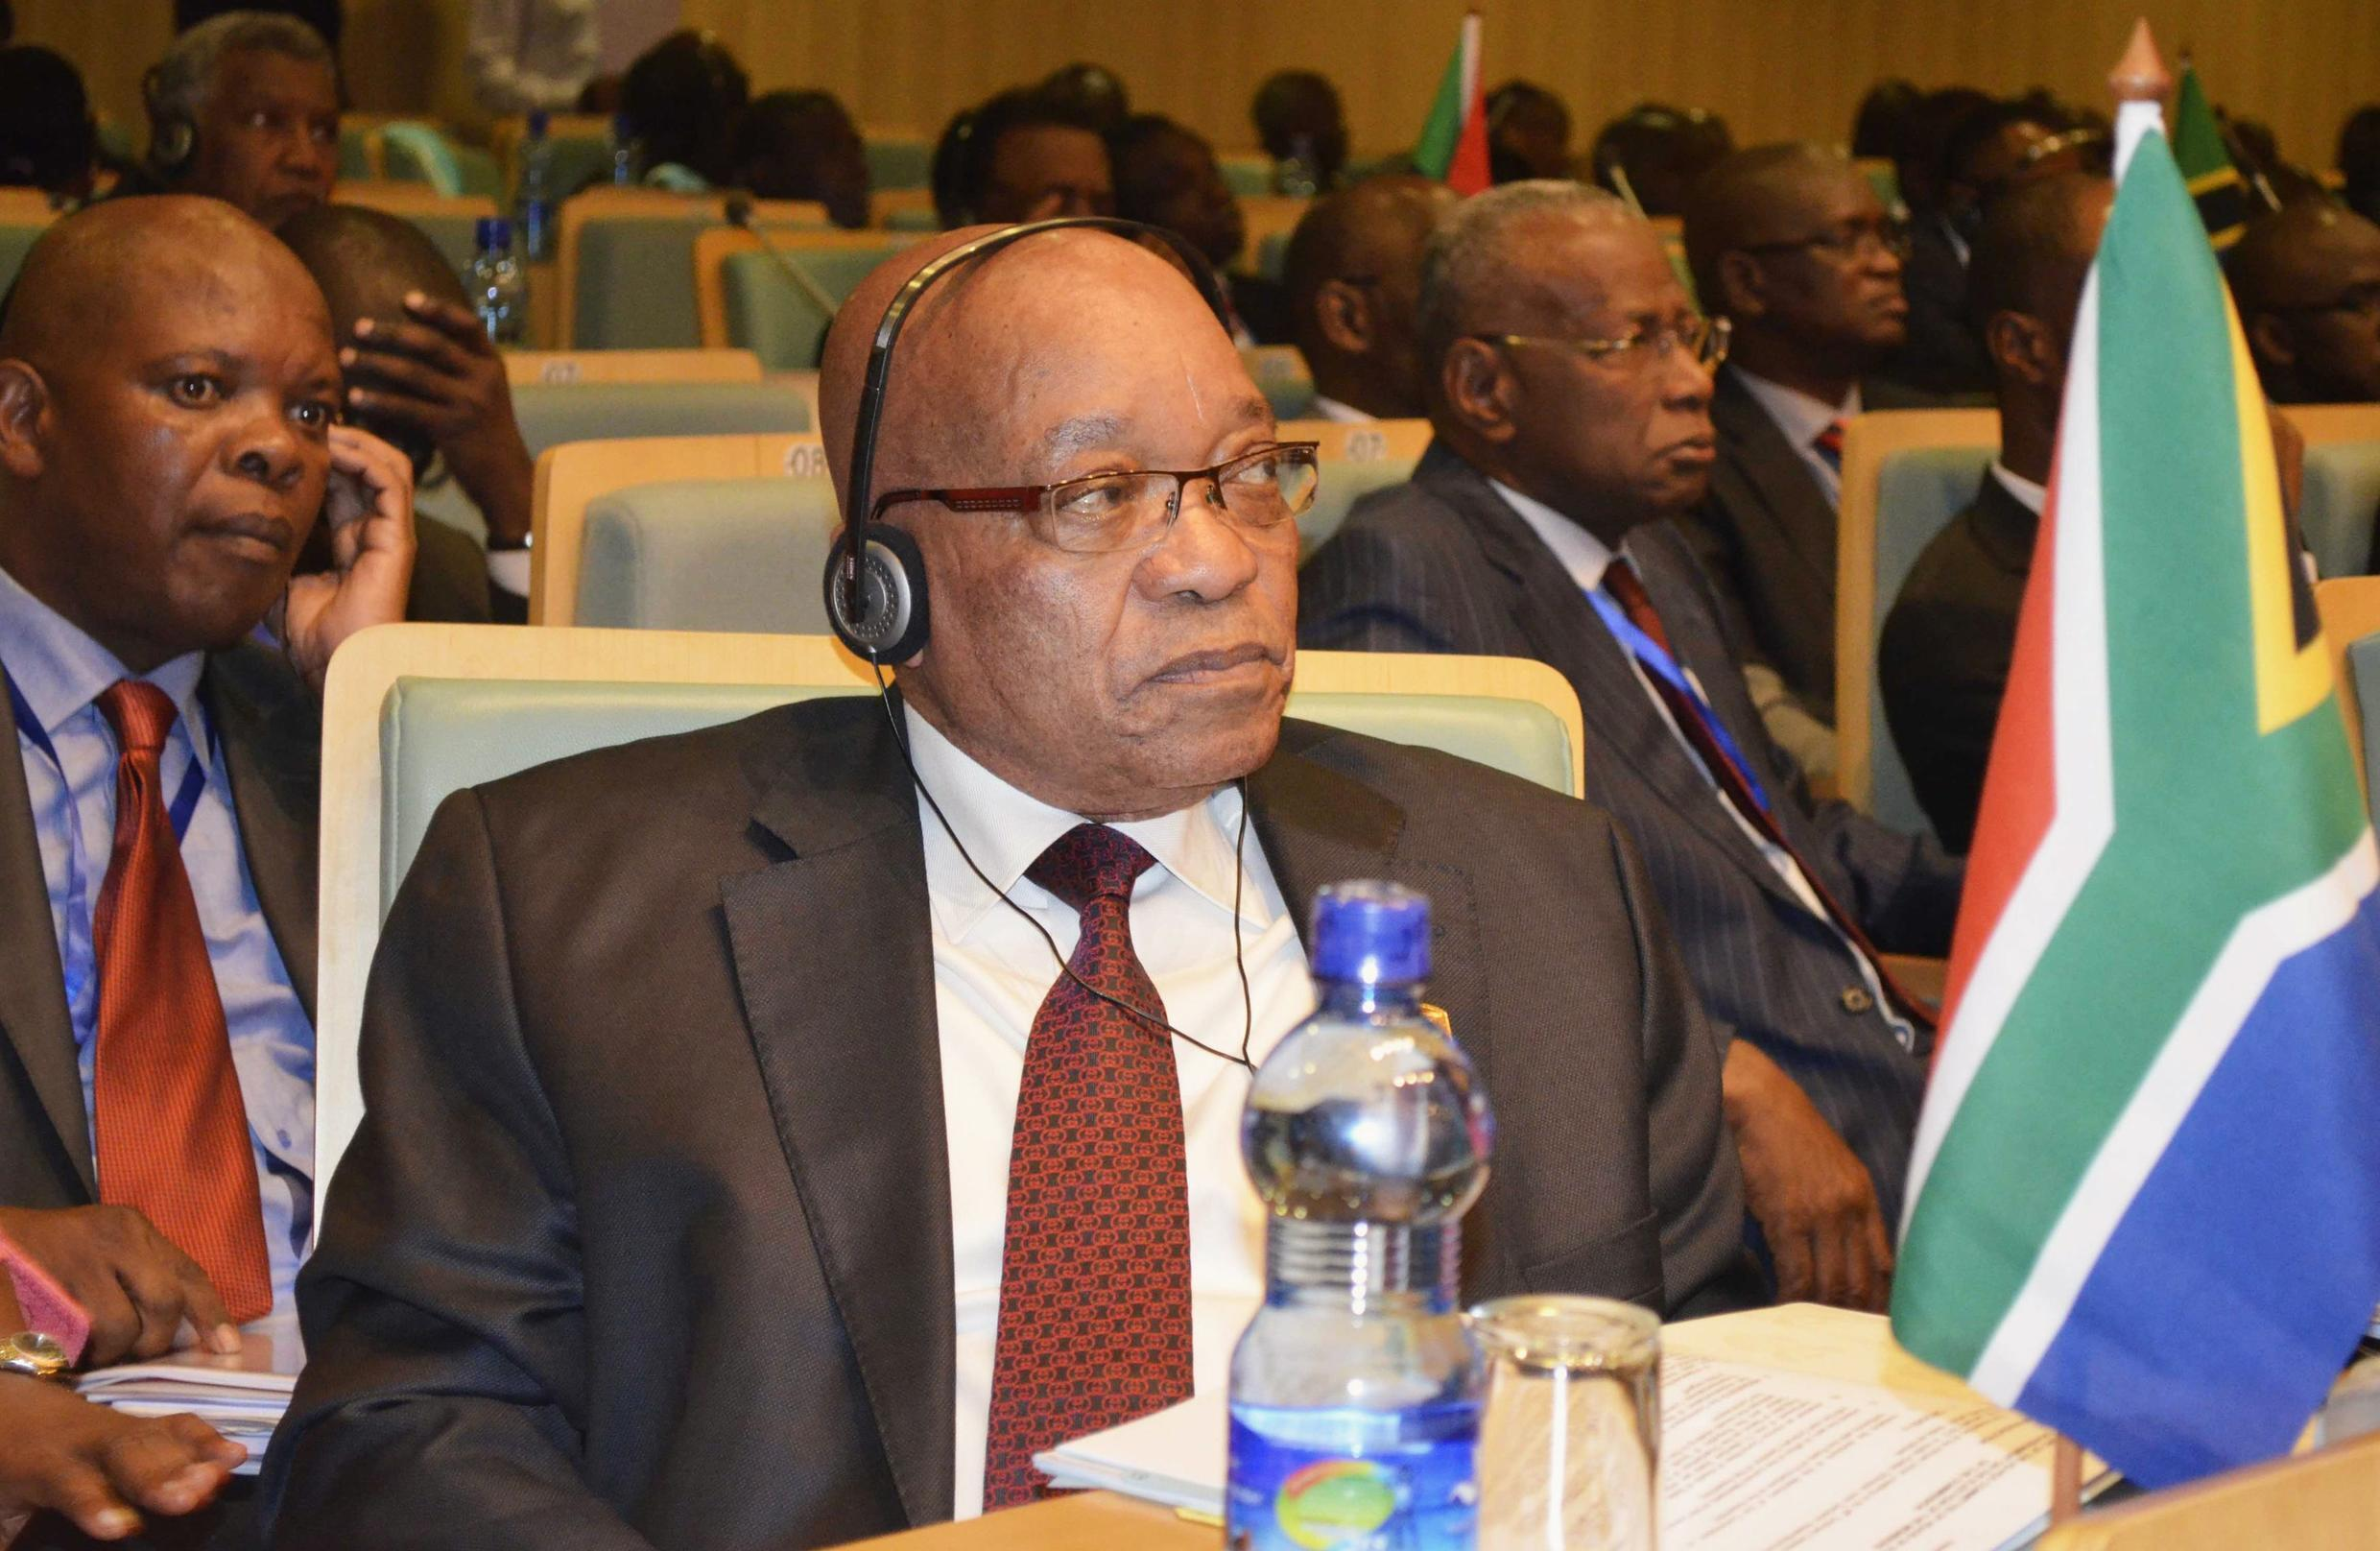 South Africa's President Jacob Zuma attends the leaders meeting at the AU summit in Addis Ababa, 14 July, 2012